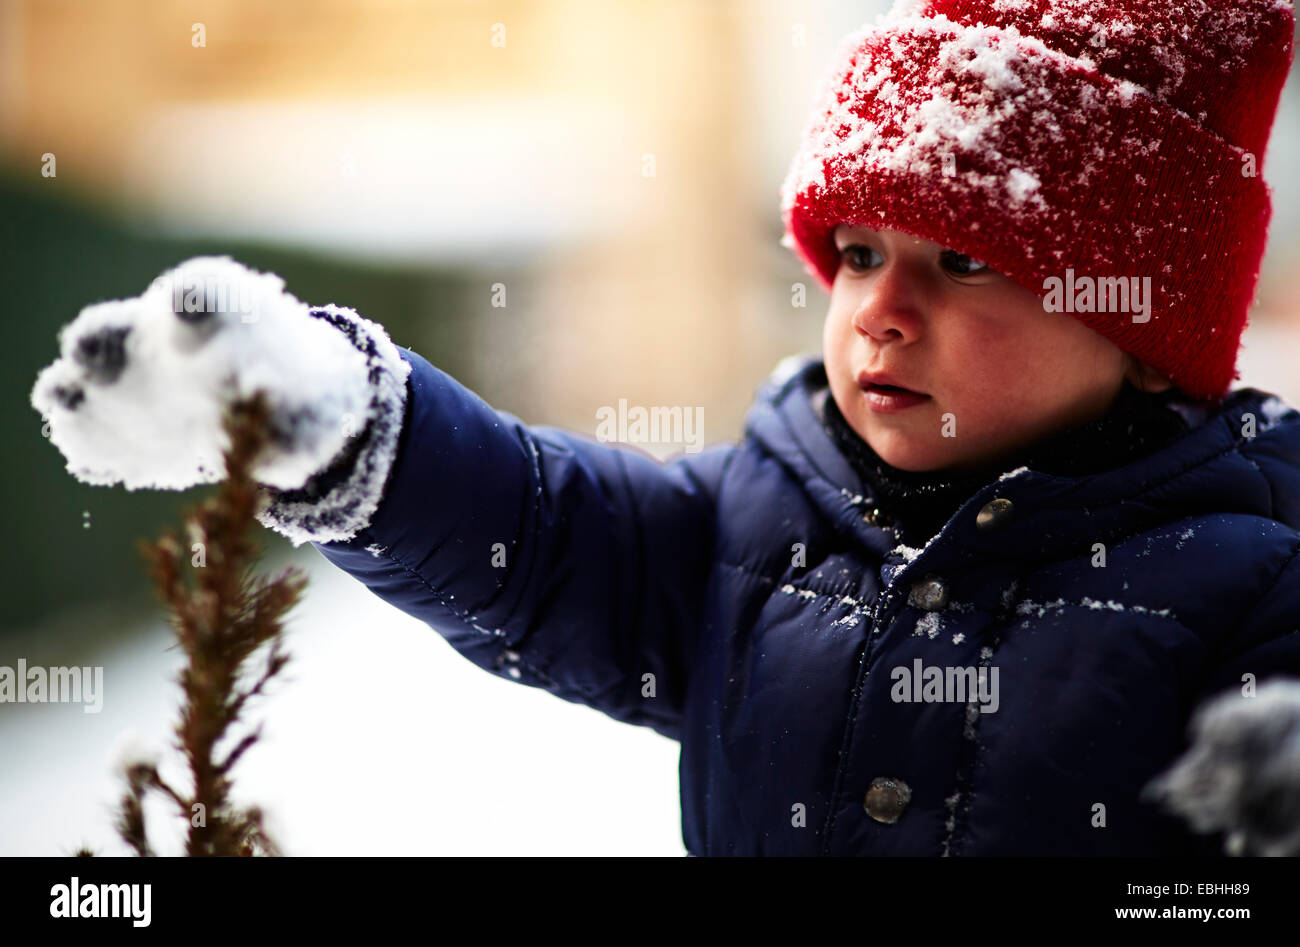 Close up of male toddler touching plant with snow covered glove - Stock Image